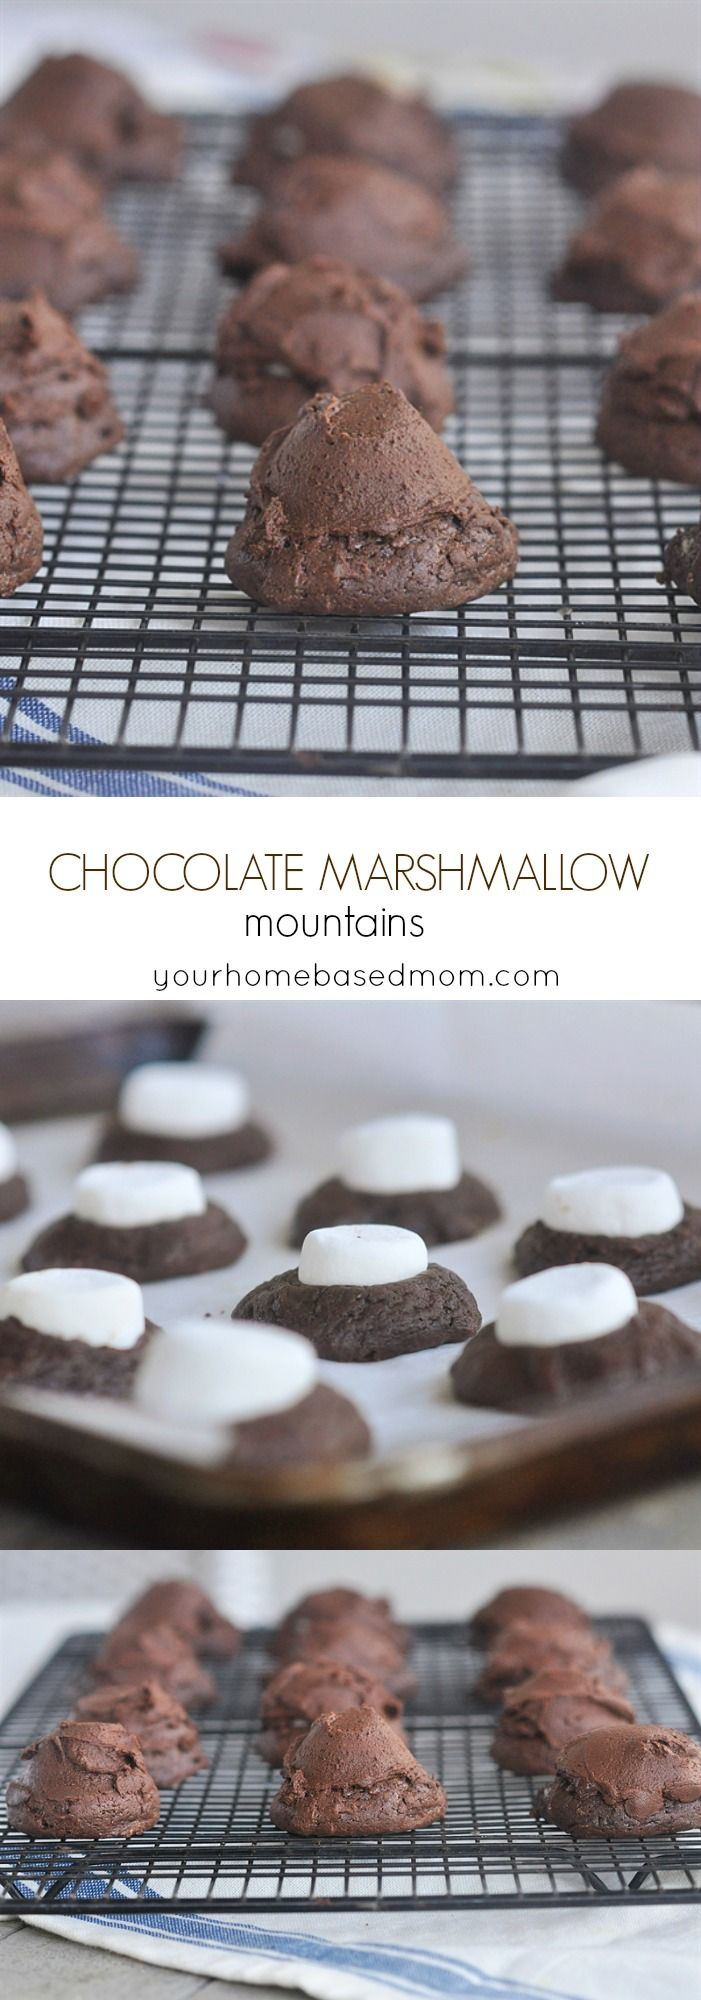 Chocolate Marshmallow Mountain Cookies